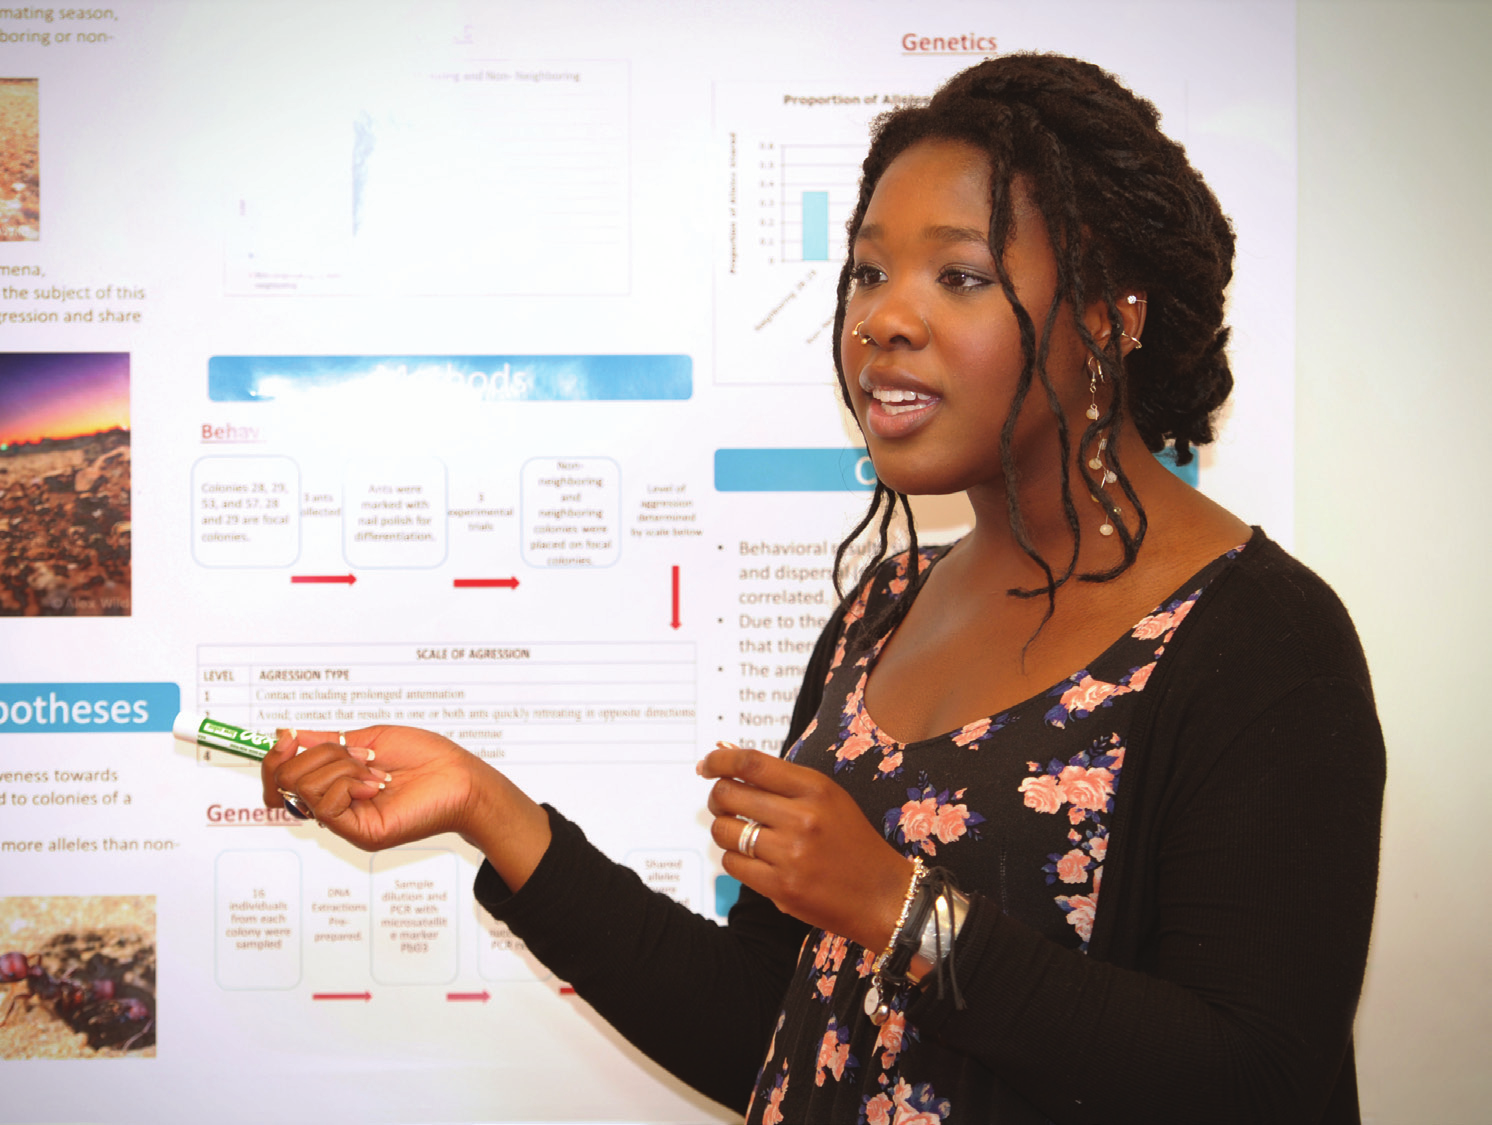 NMSU biology student Linner Itauh presents her research poster during the lab component of an NMSU-HHMI un- dergraduate guided biological research class in Foster Hall. The 2015 class is taught by biology professor Tim Wright.